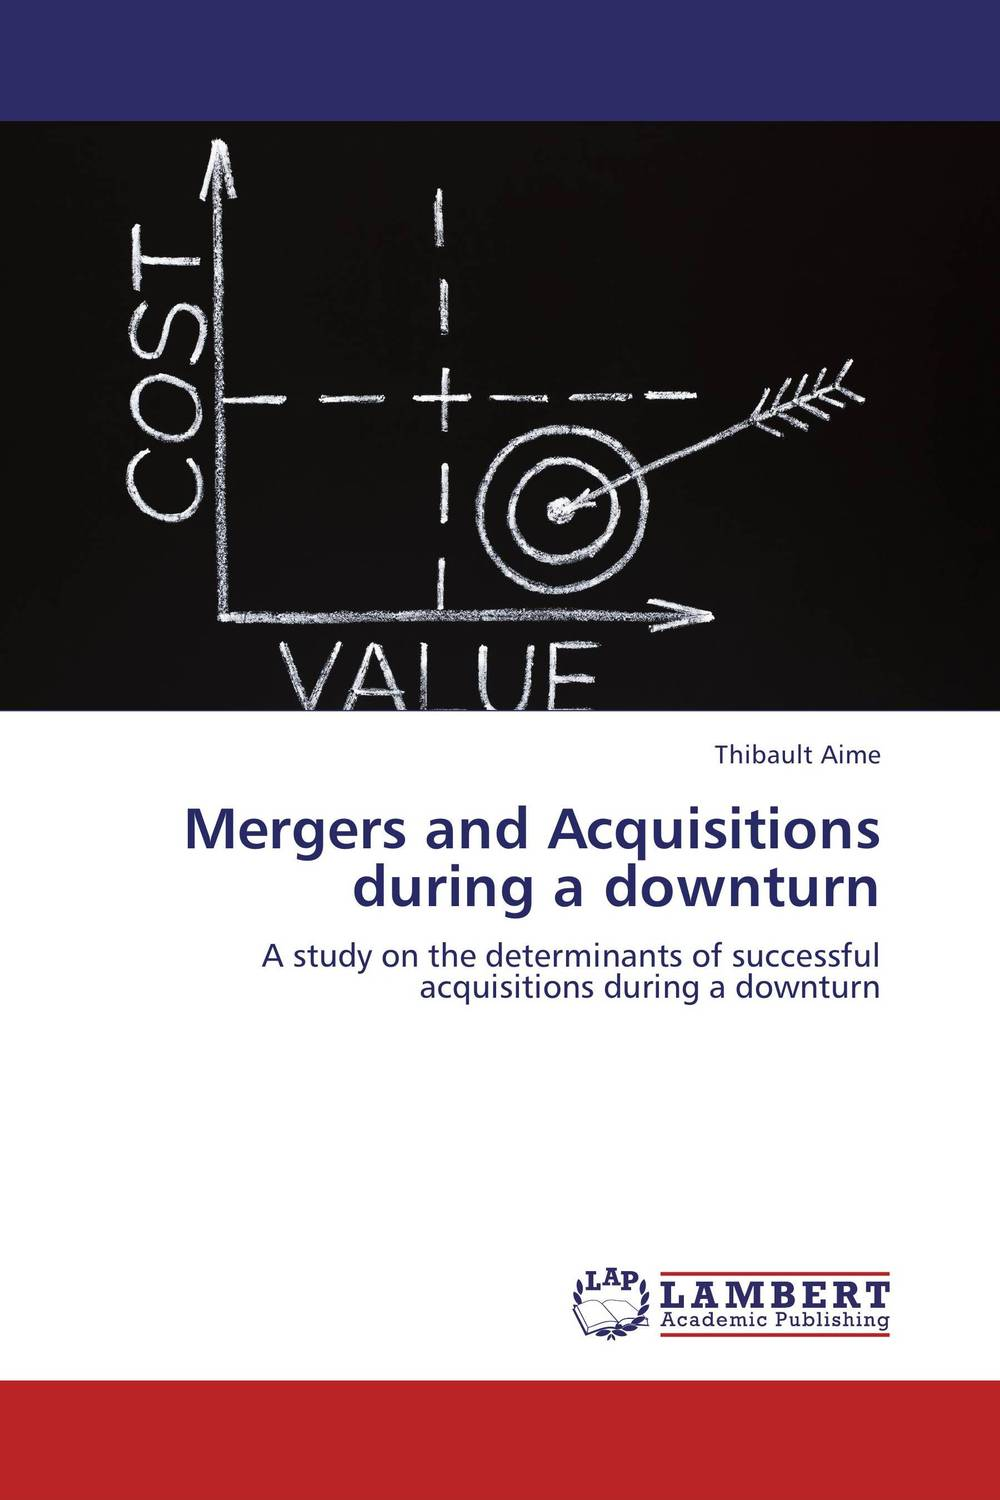 Mergers and Acquisitions during a downturn the corporate mergers